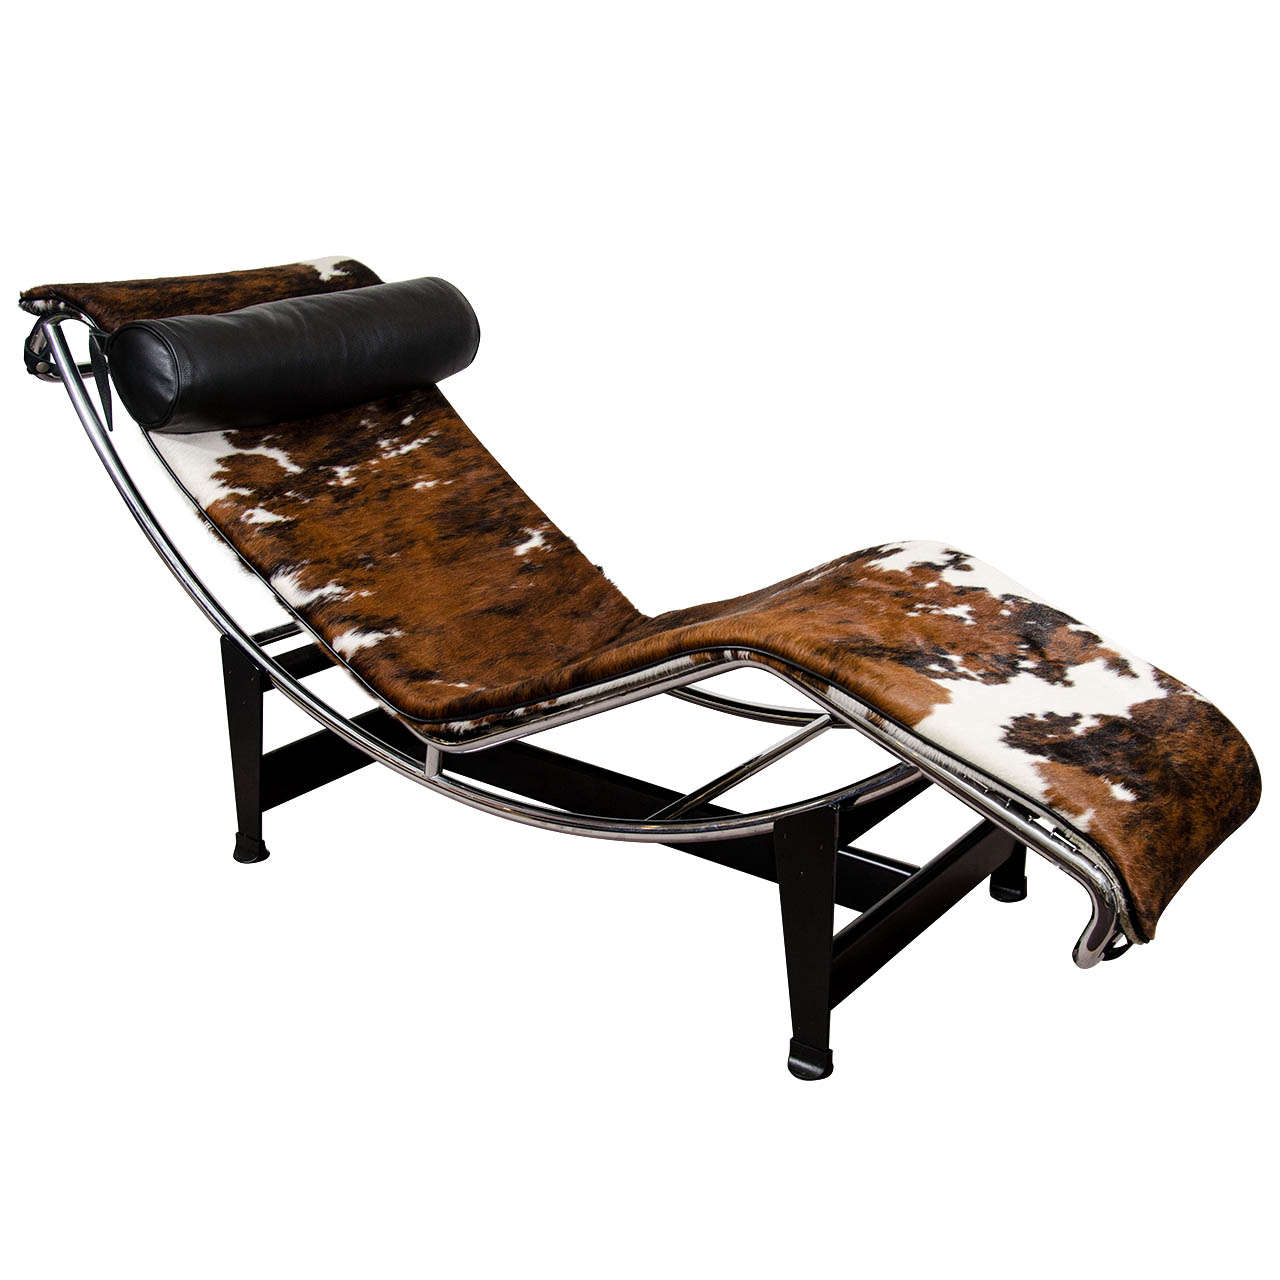 Le corbusier chair vintage - A Mid Century Le Corbusier Lc4 Lounge Chair In Cowhide 1